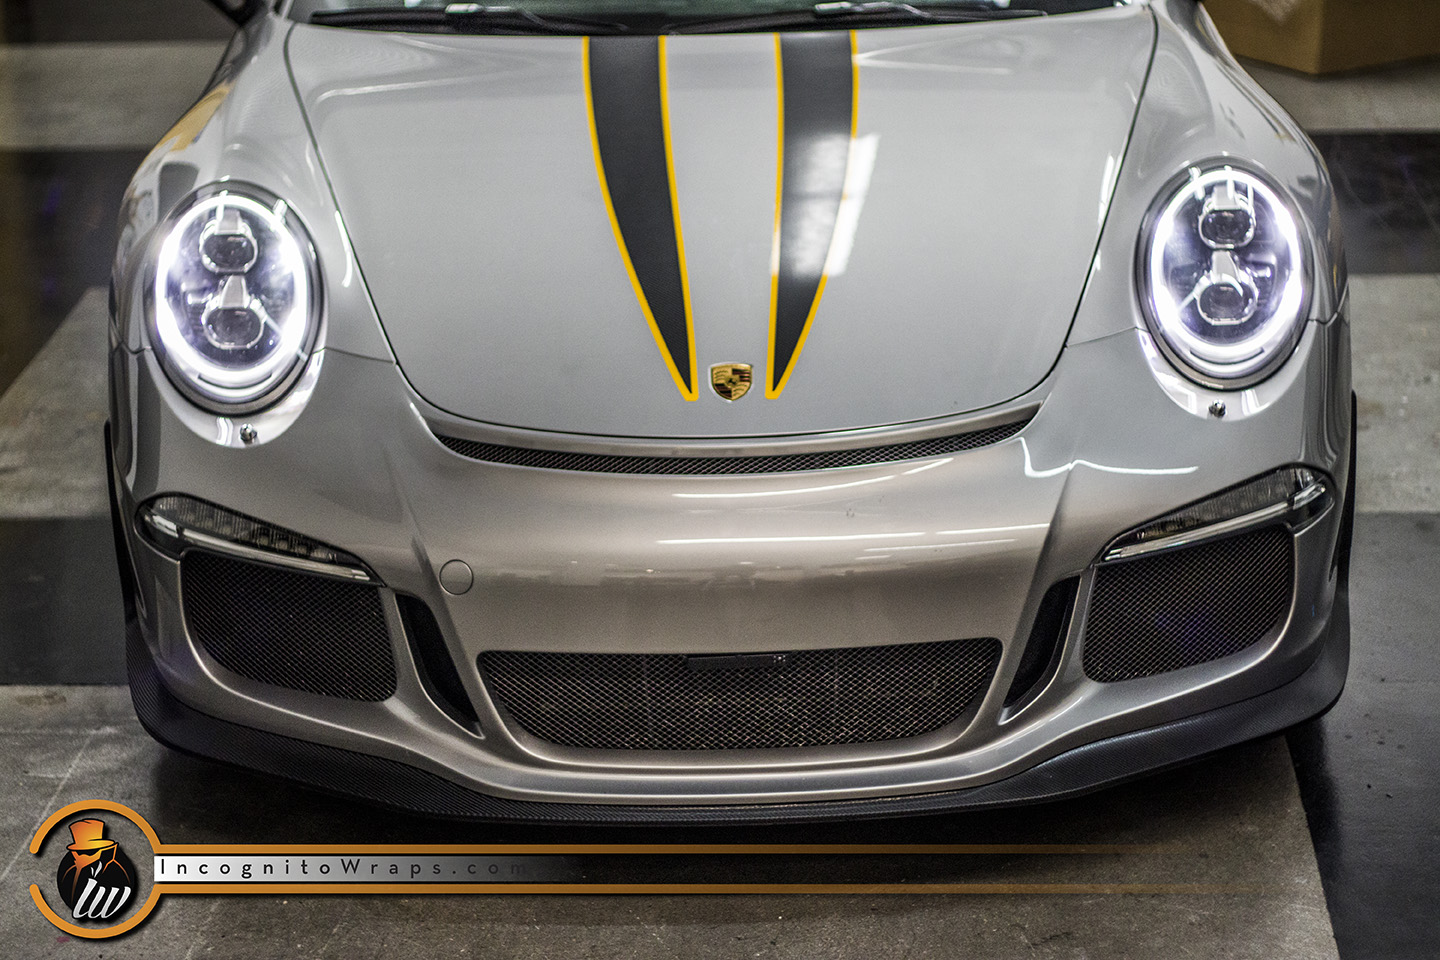 Porsche GT3 RS - Carbon Fiber Accents